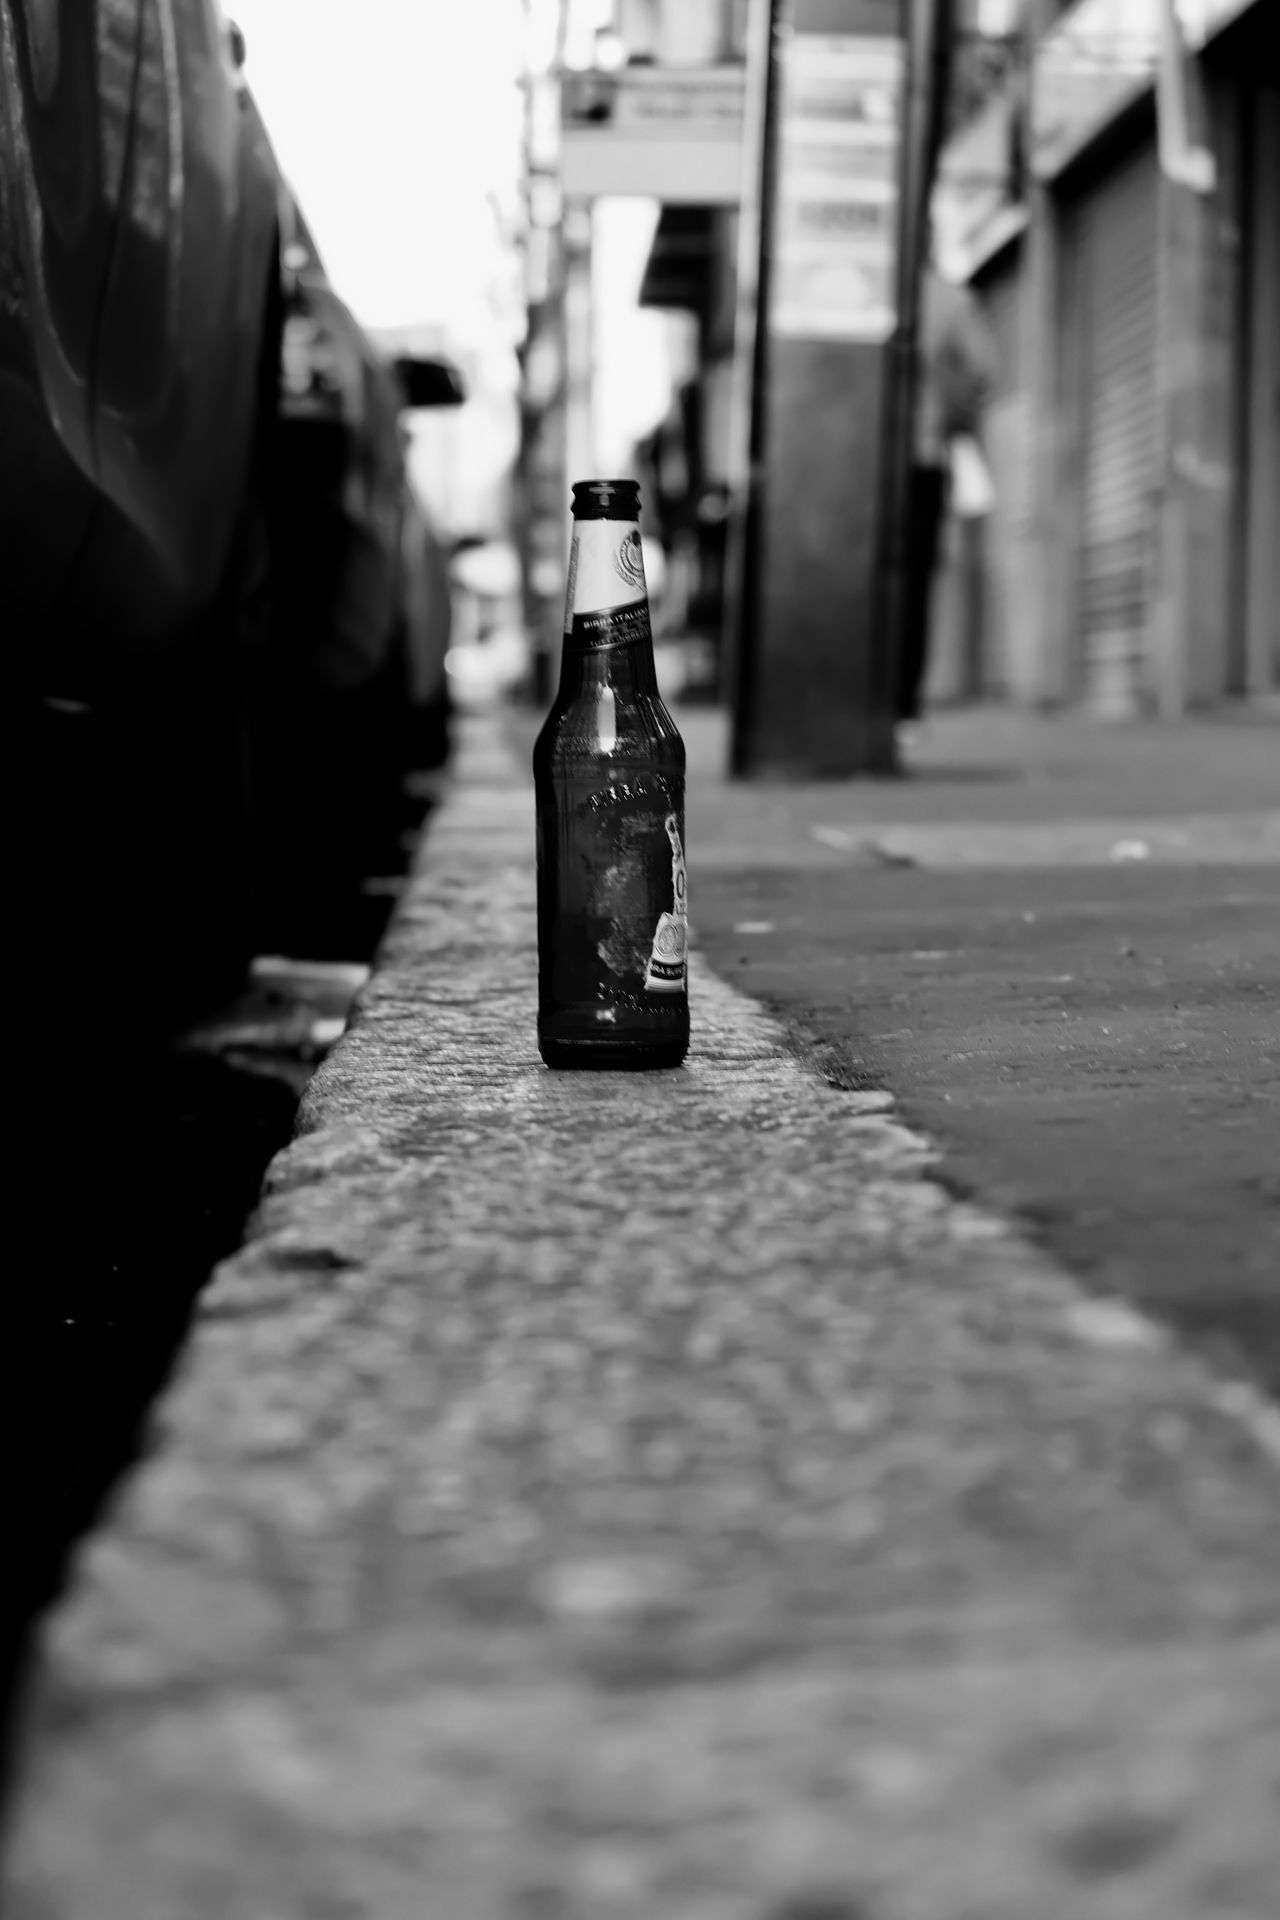 Belfast Blackandwhite Bottle Building Exterior Built Structure Close-up Day Fujifilm Ireland Myfujifilm Nireland No People Outdoors Streetphotography Surface Level The Way Forward